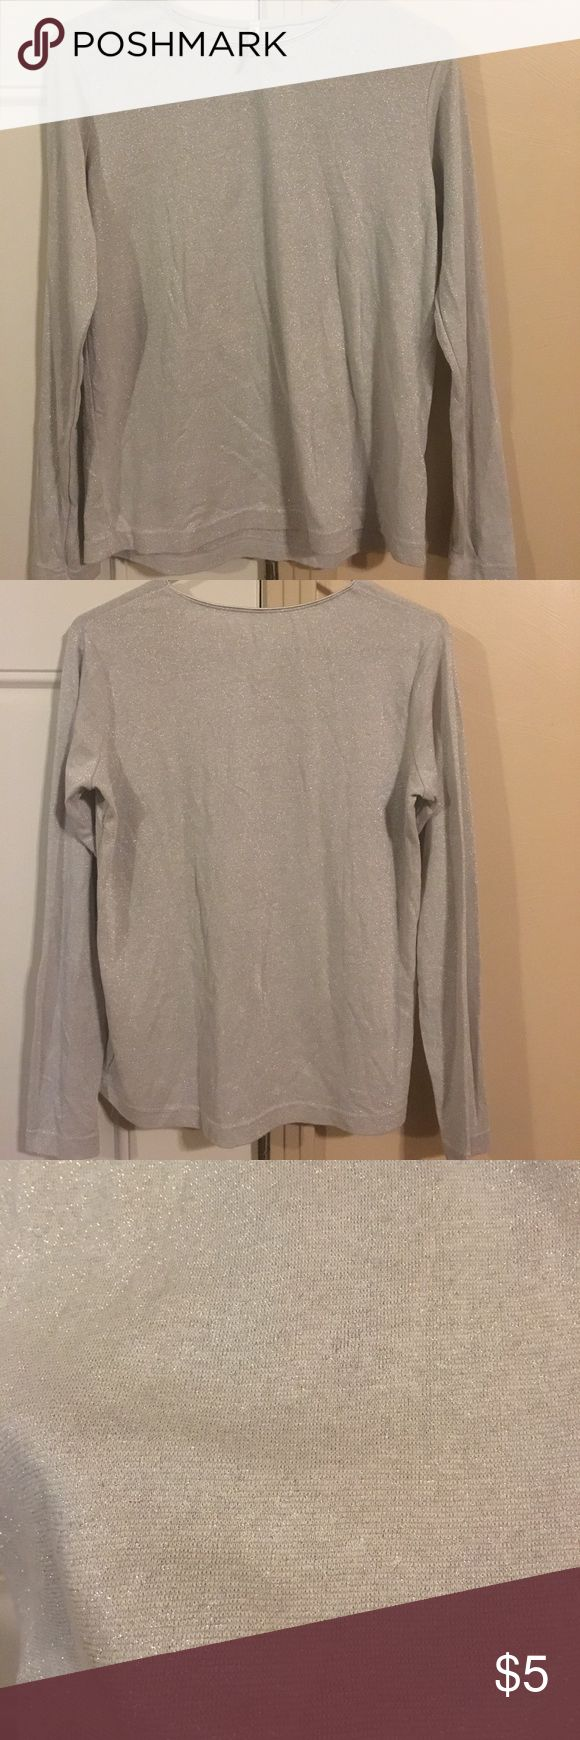 Sparkly long sleeve top Sparkly silver long sleeve ladies knit top. Great holiday basic! White Stag Tops